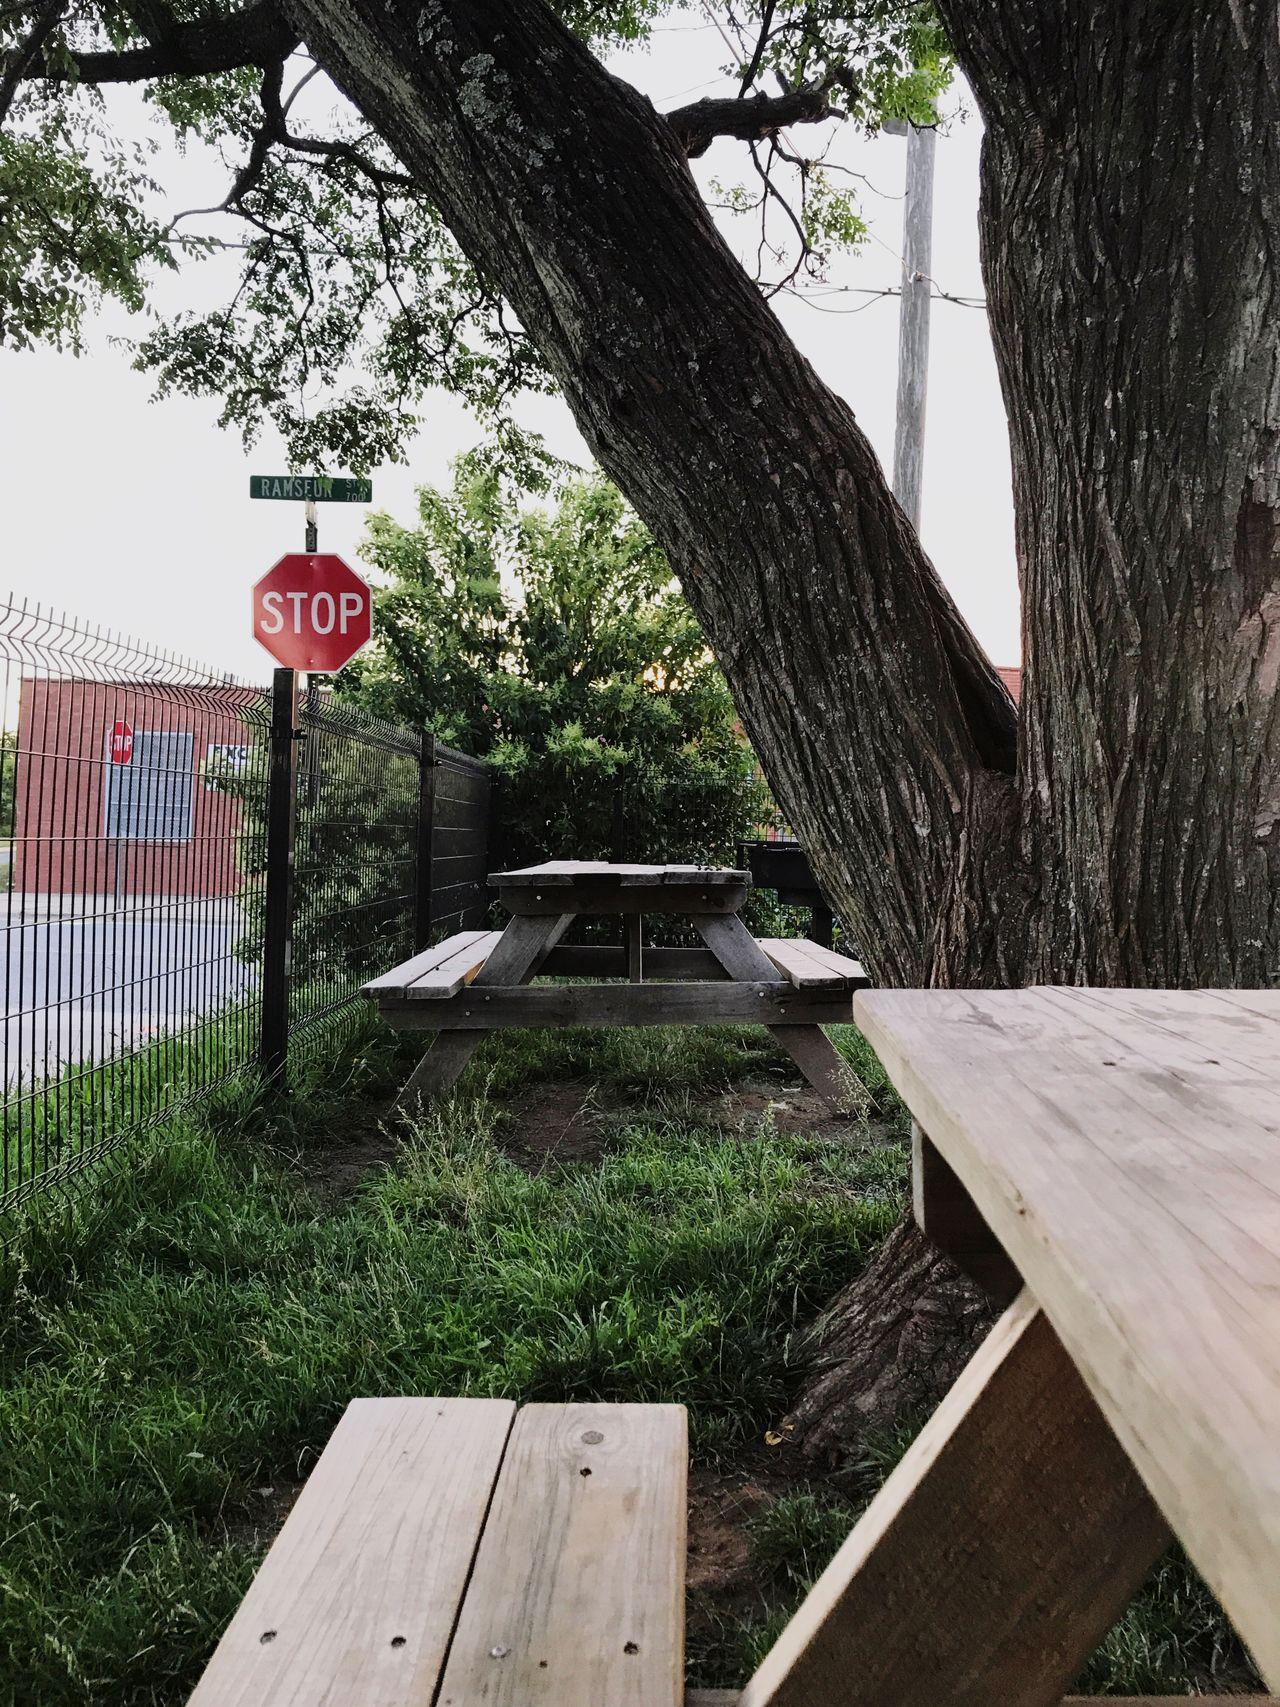 Urban picnic. Tree Wood - Material Tree Trunk Communication Day Built Structure Outdoors No People Architecture Grass Nature Sky Stop Sign Fence Urban Picnic Table Sign